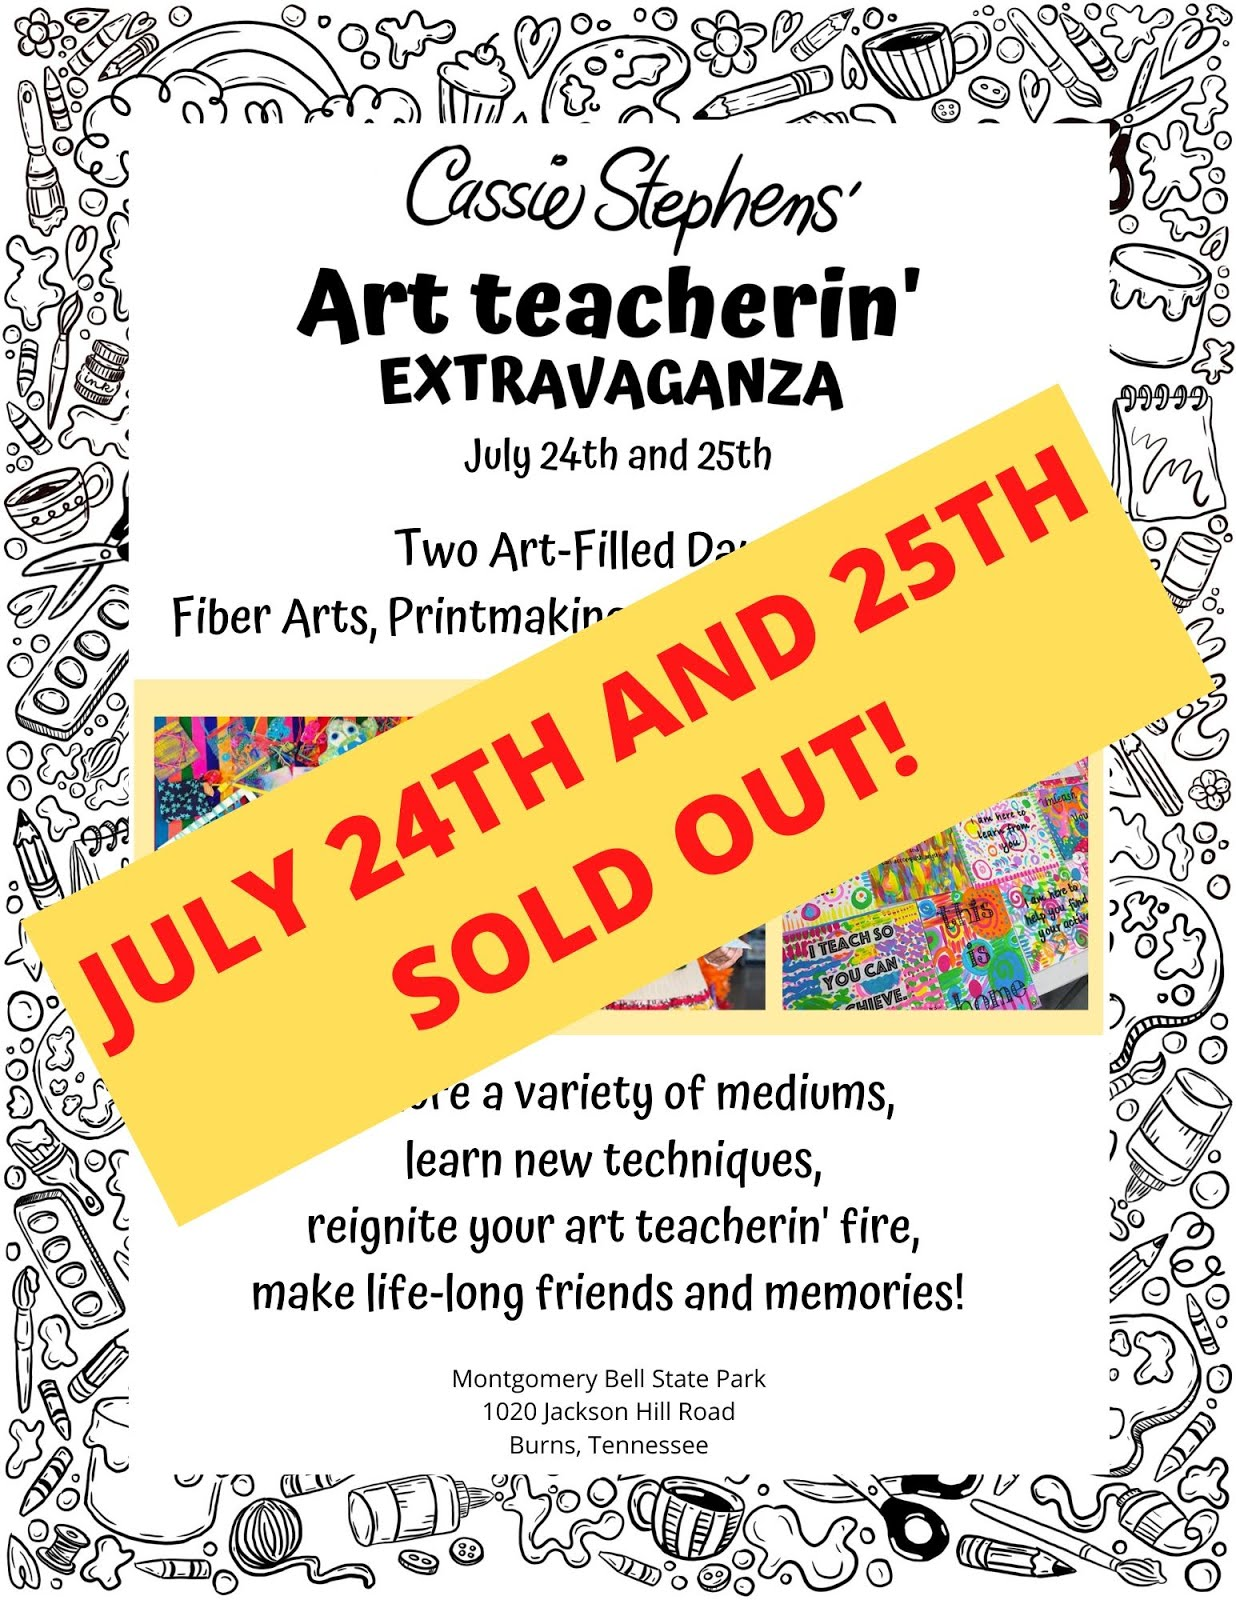 Art Teacherin' Extravaganza 1